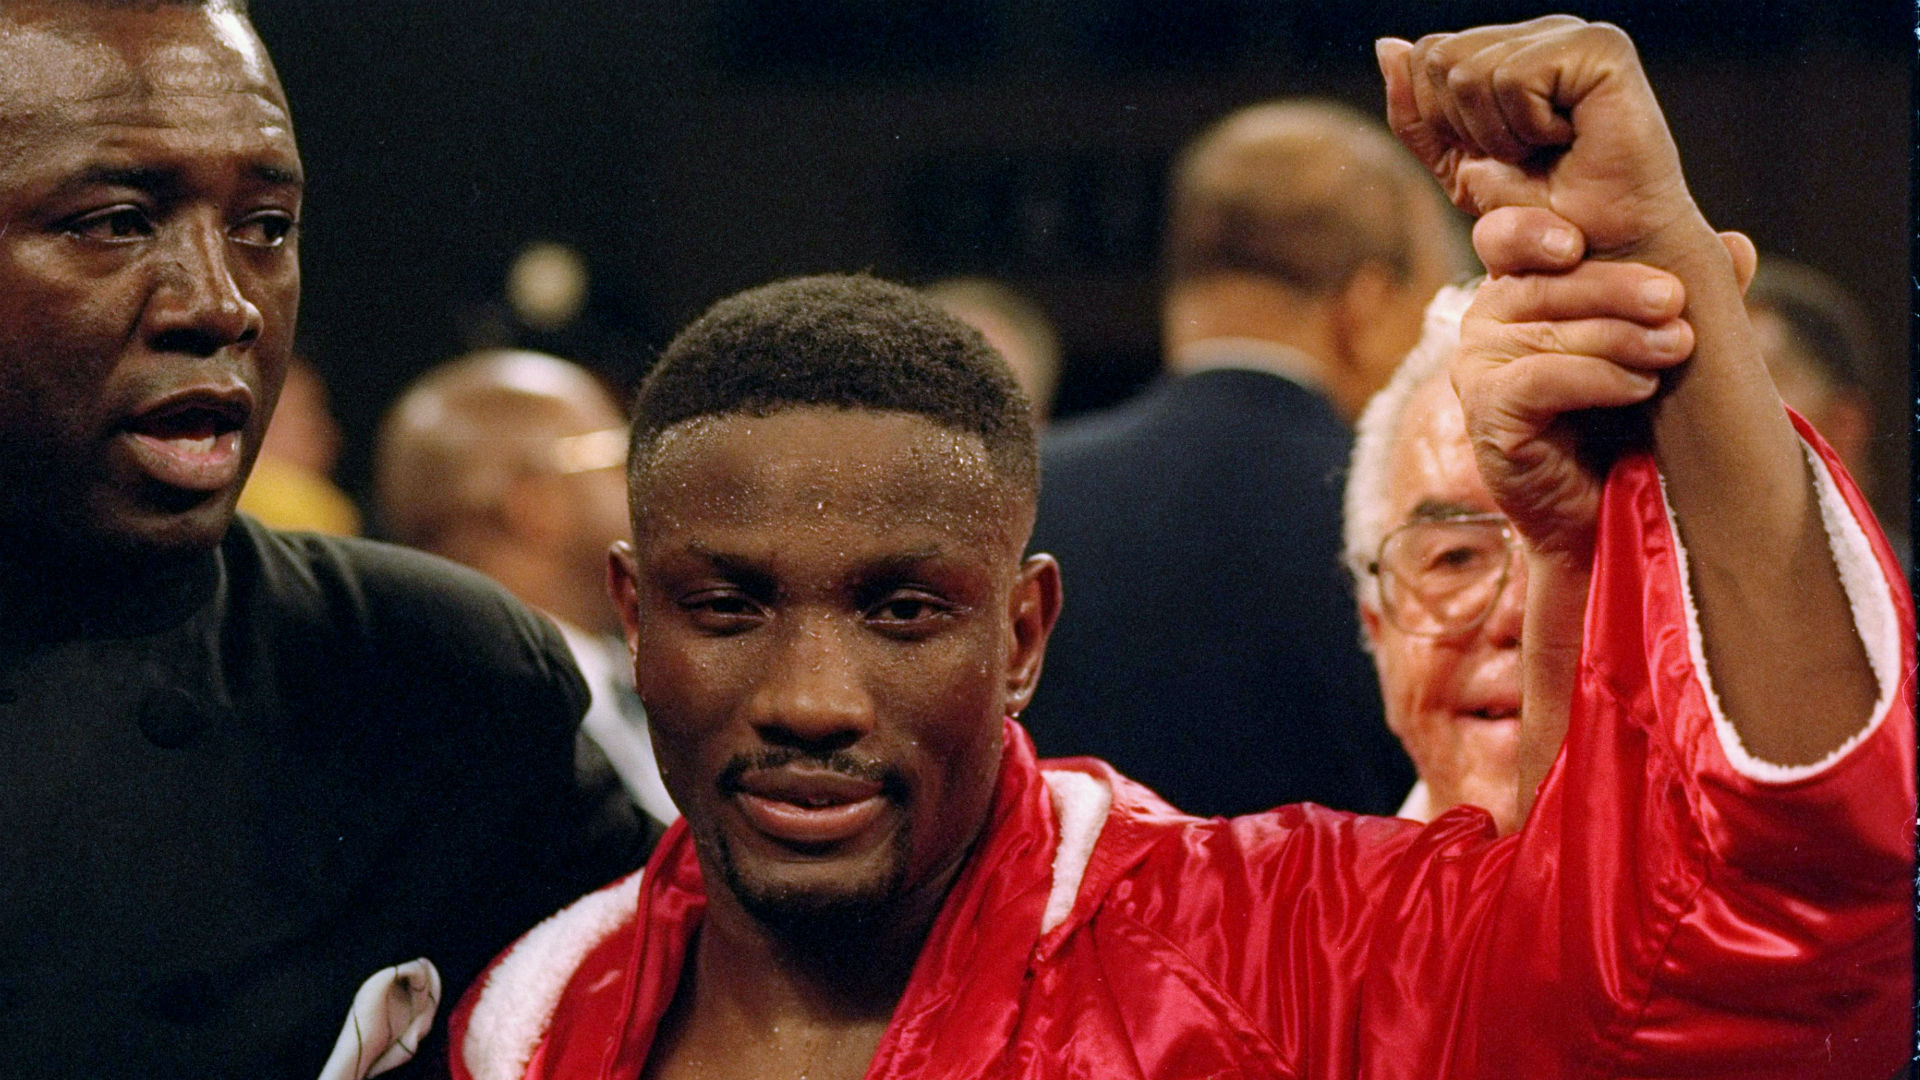 Boxing community reacts to tragic death of Pernell Whitaker